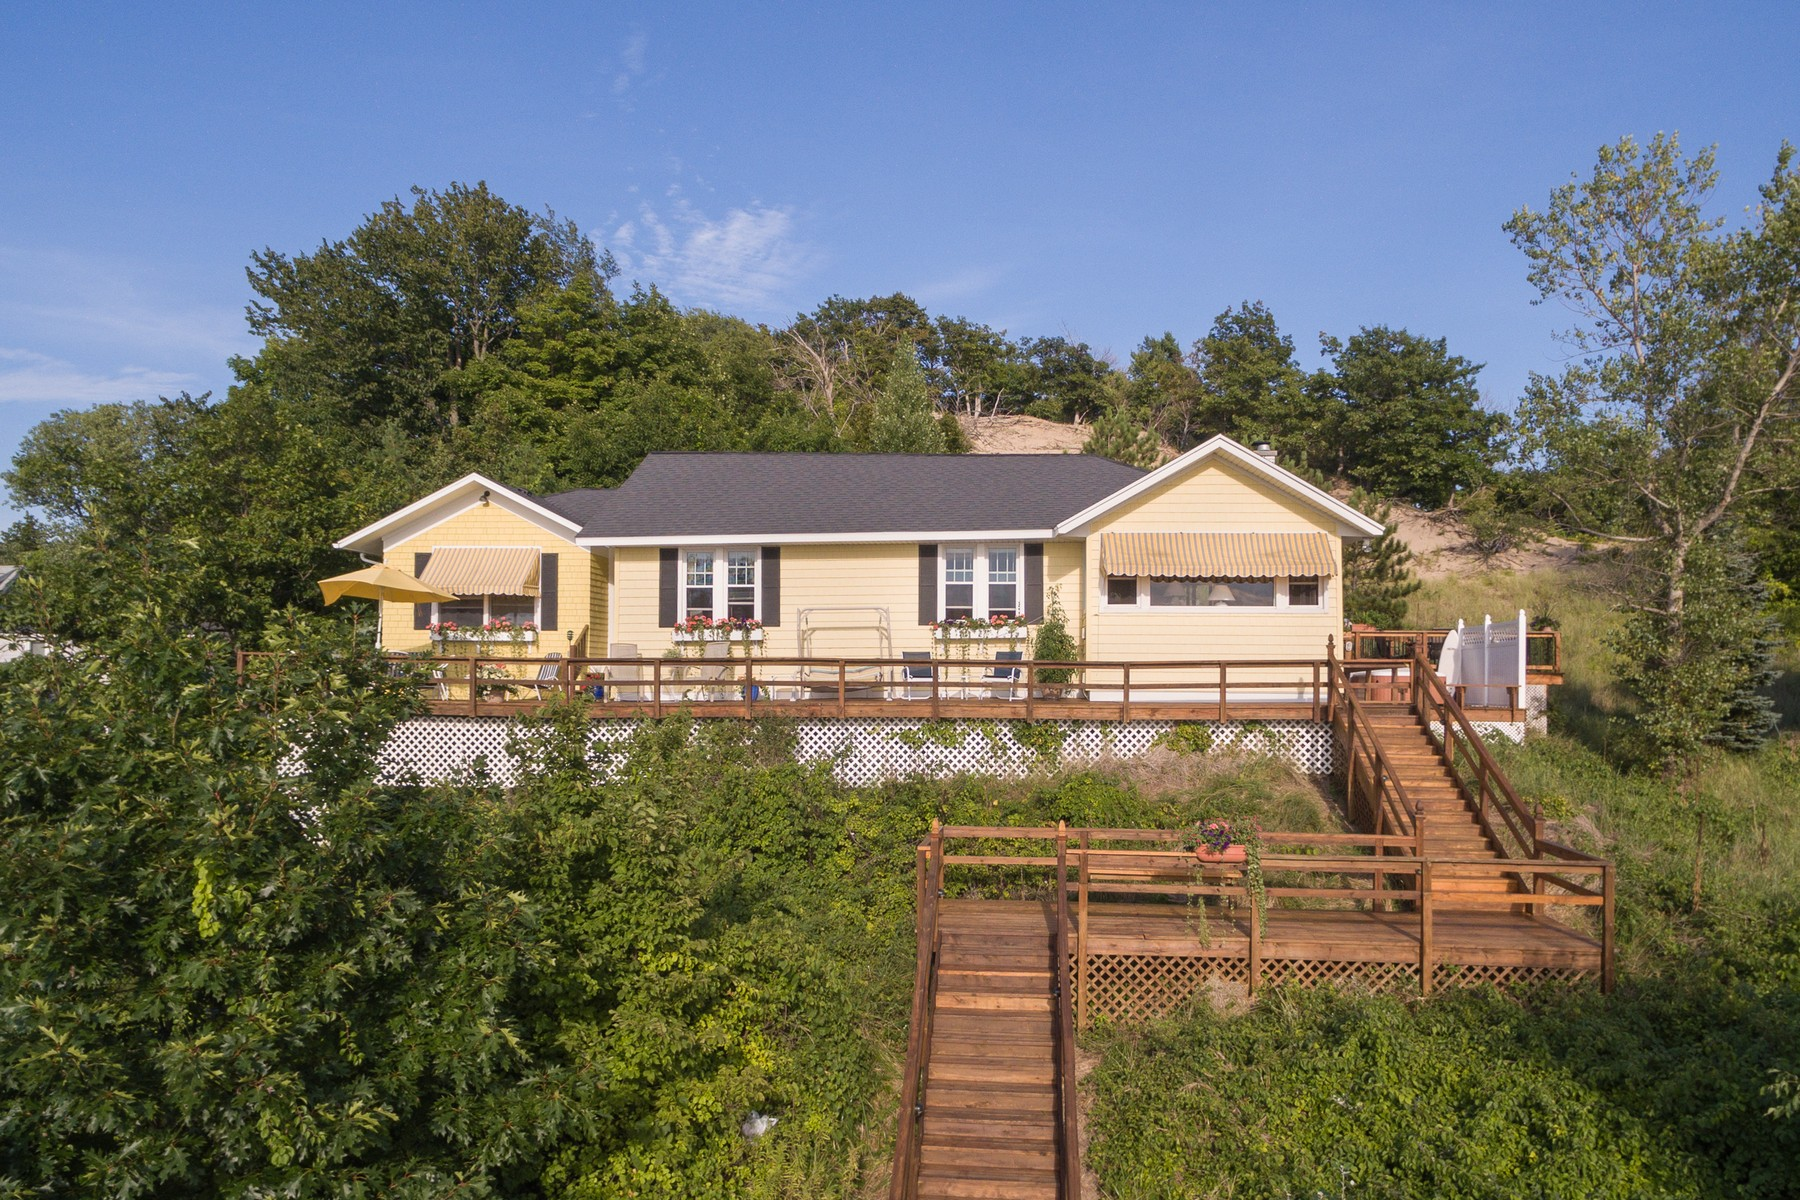 Single Family Home for Sale at Unencumbered Views Of Lake Michigan 2448 Blue Bell Court Macatawa, Michigan, 49434 United States